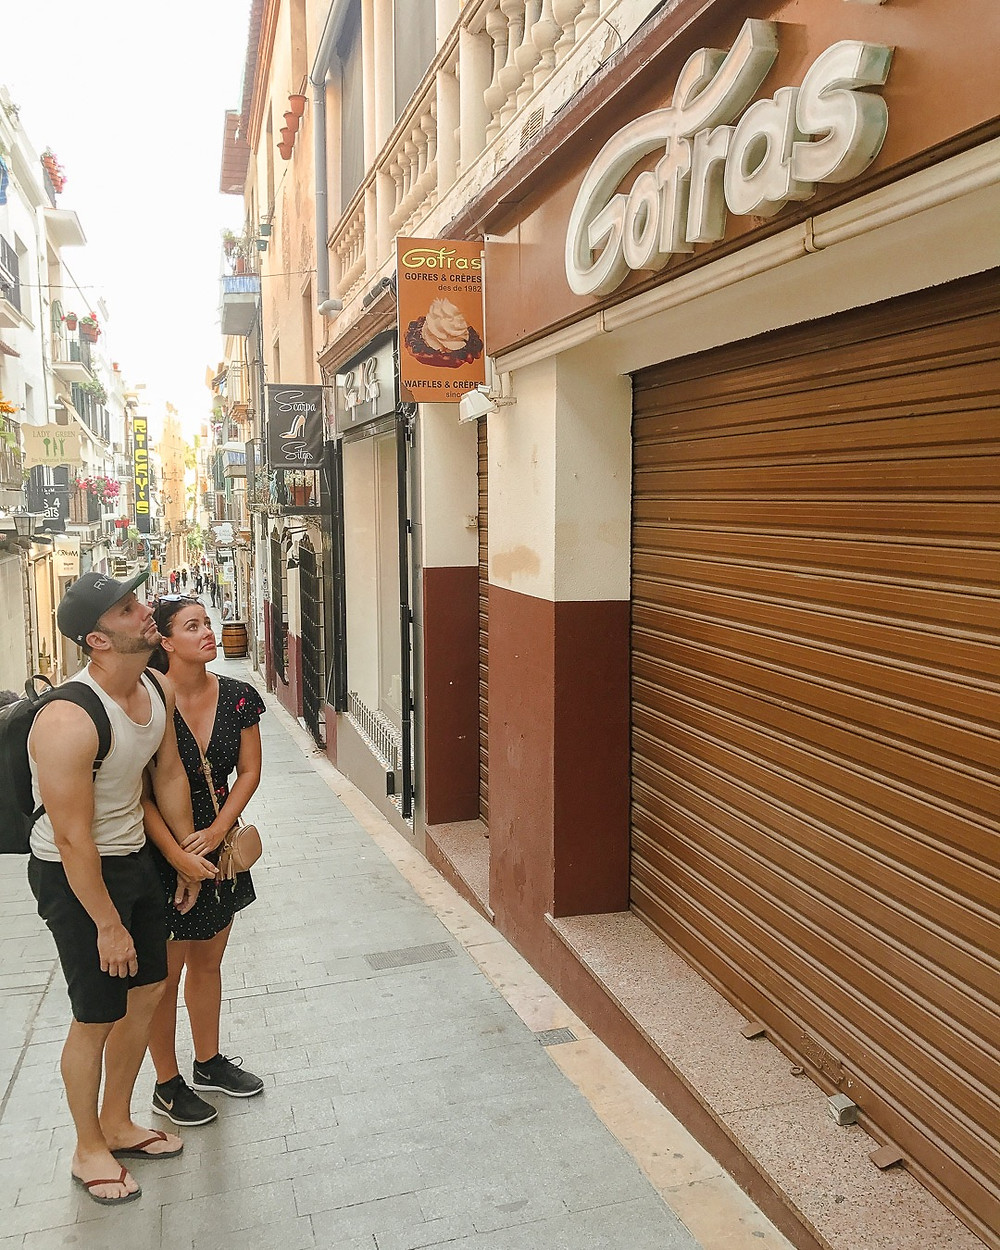 Closed Gofras waffle restaurant in sitges barcelona spain, sad, disappointed people.